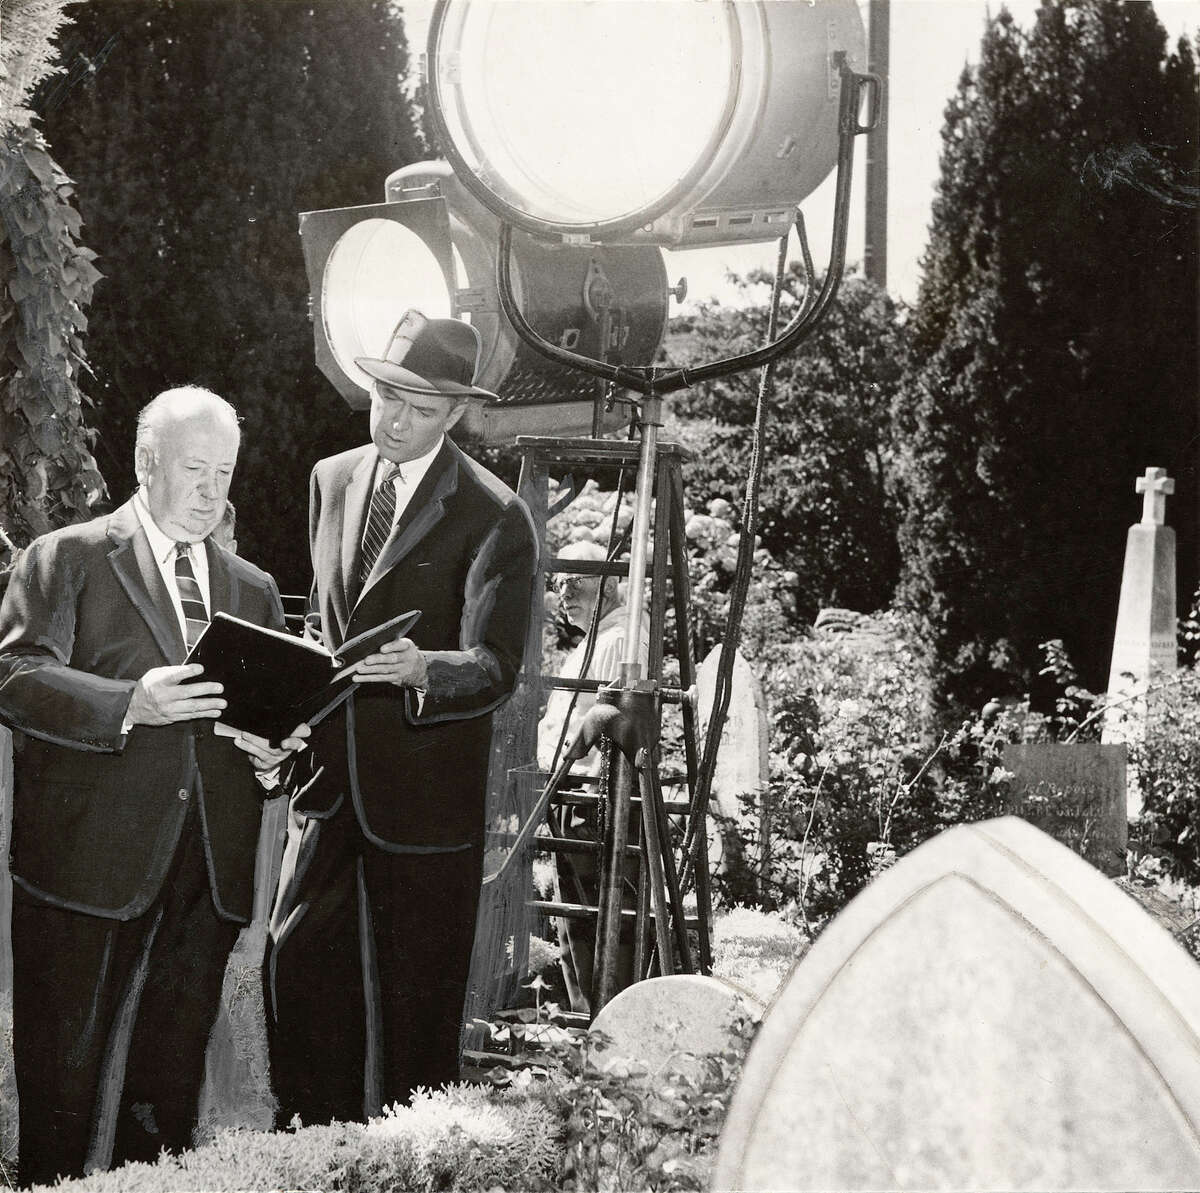 A behind-the-scenes photo shows director Alfred Hitchcock with James Stewart at Mission Dolores during the filming of